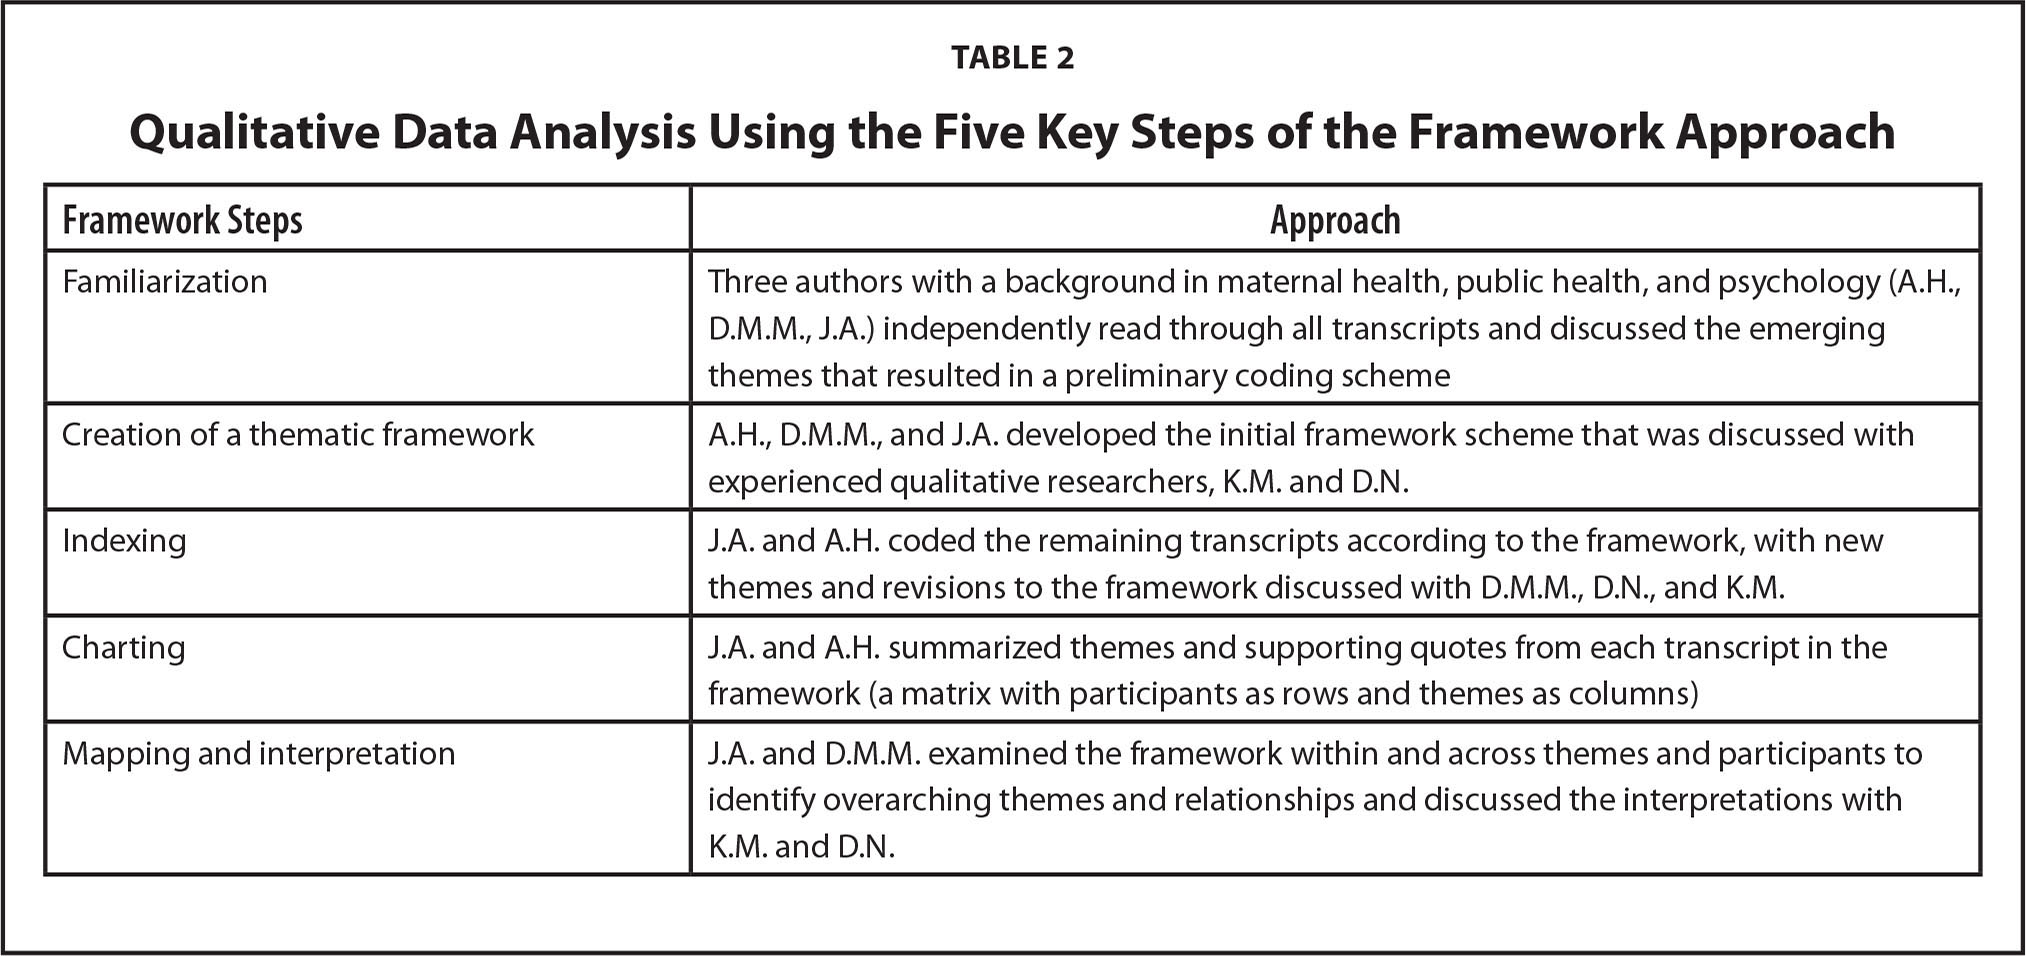 Qualitative Data Analysis Using the Five Key Steps of the Framework Approach